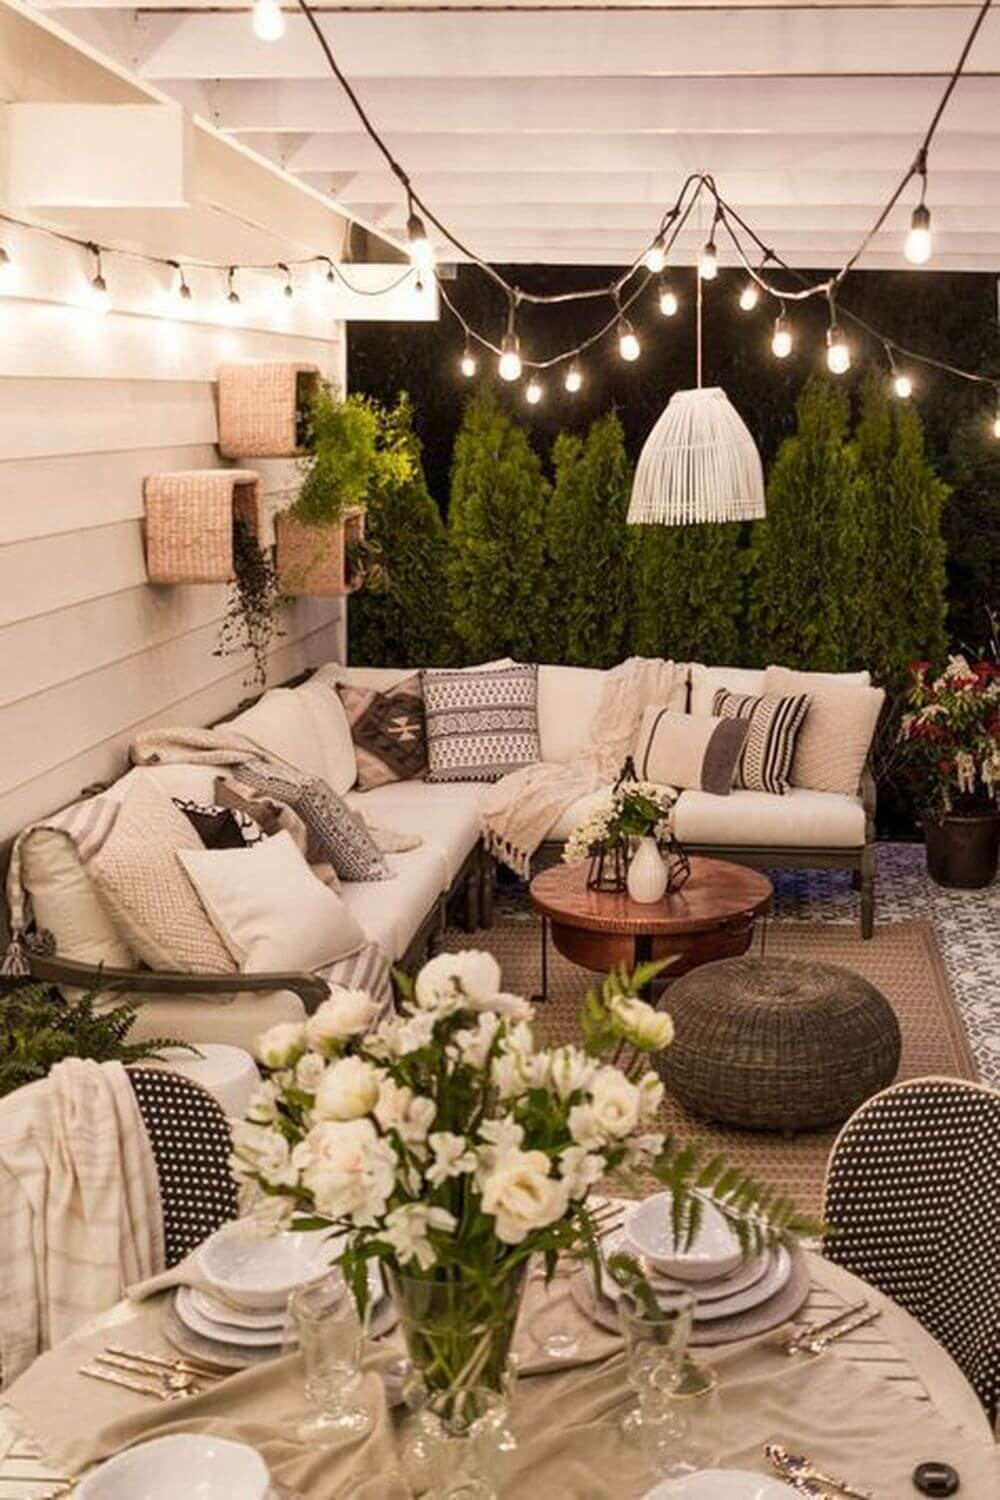 Comfy Porch Seating with Hanging Lights